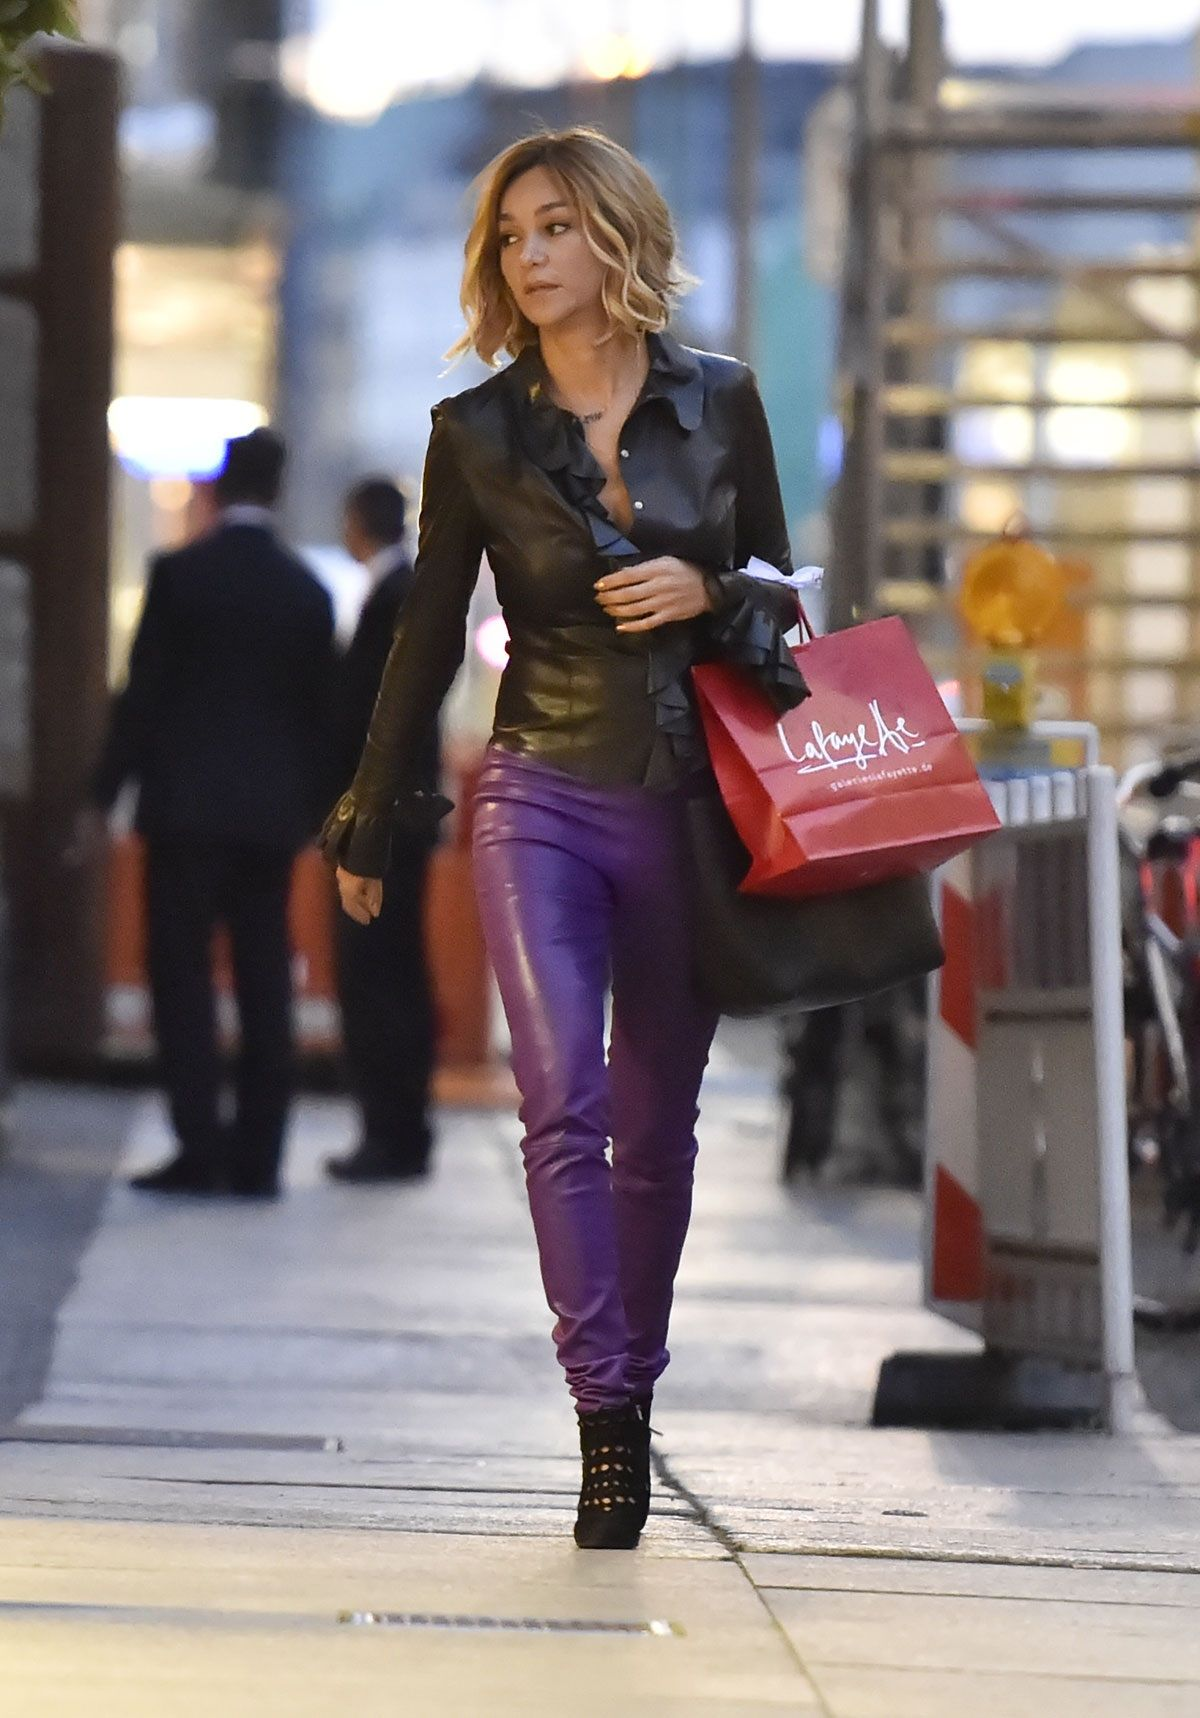 Women Leather Pants with Leather Shirt